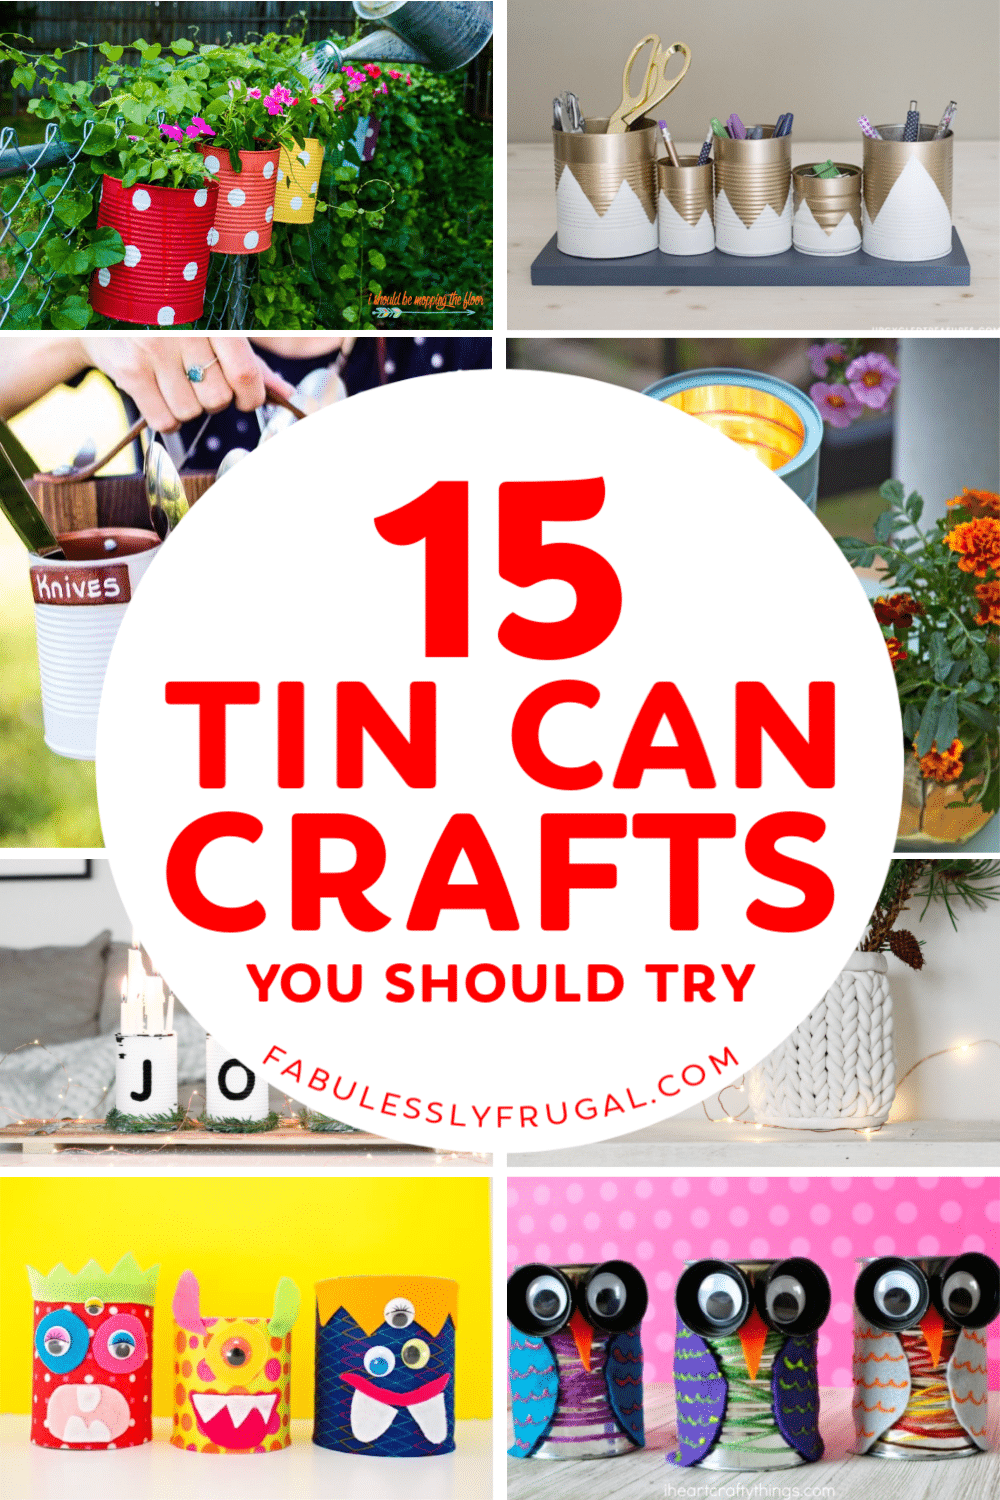 Diy Tin Can Crafts Projects And Ideas For Upcycling With